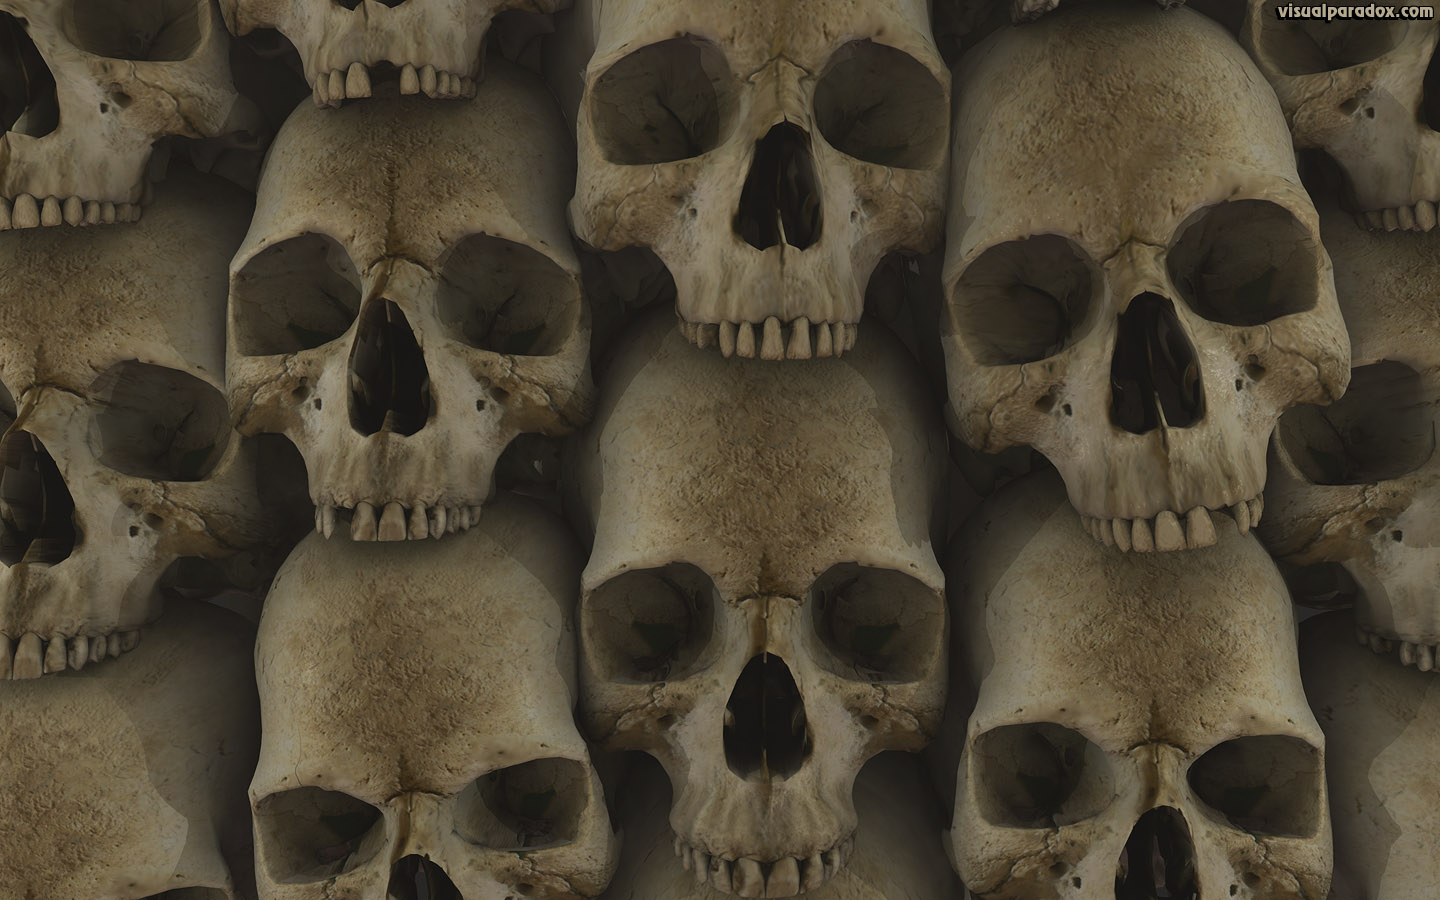 skull, bone, head, stack, Les Catacombes, crypt, gothic, skulls, bones, 3d, wallpaper, widescreen